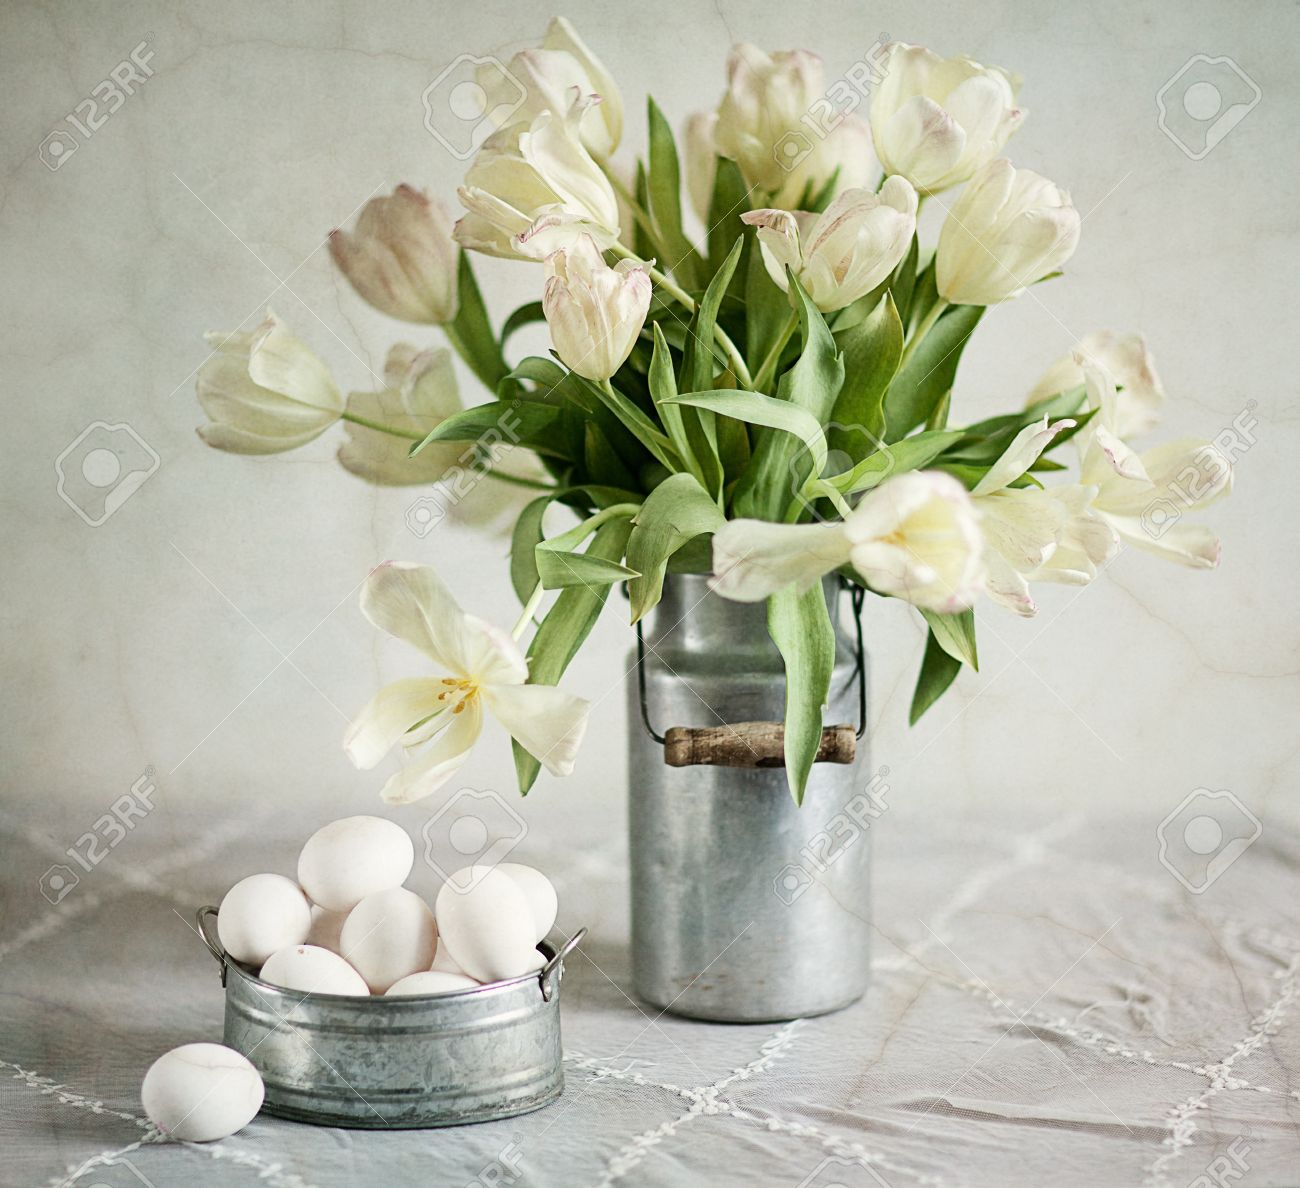 Still Life with Tulips in old milk can and eggs Stock Photo - 12133922